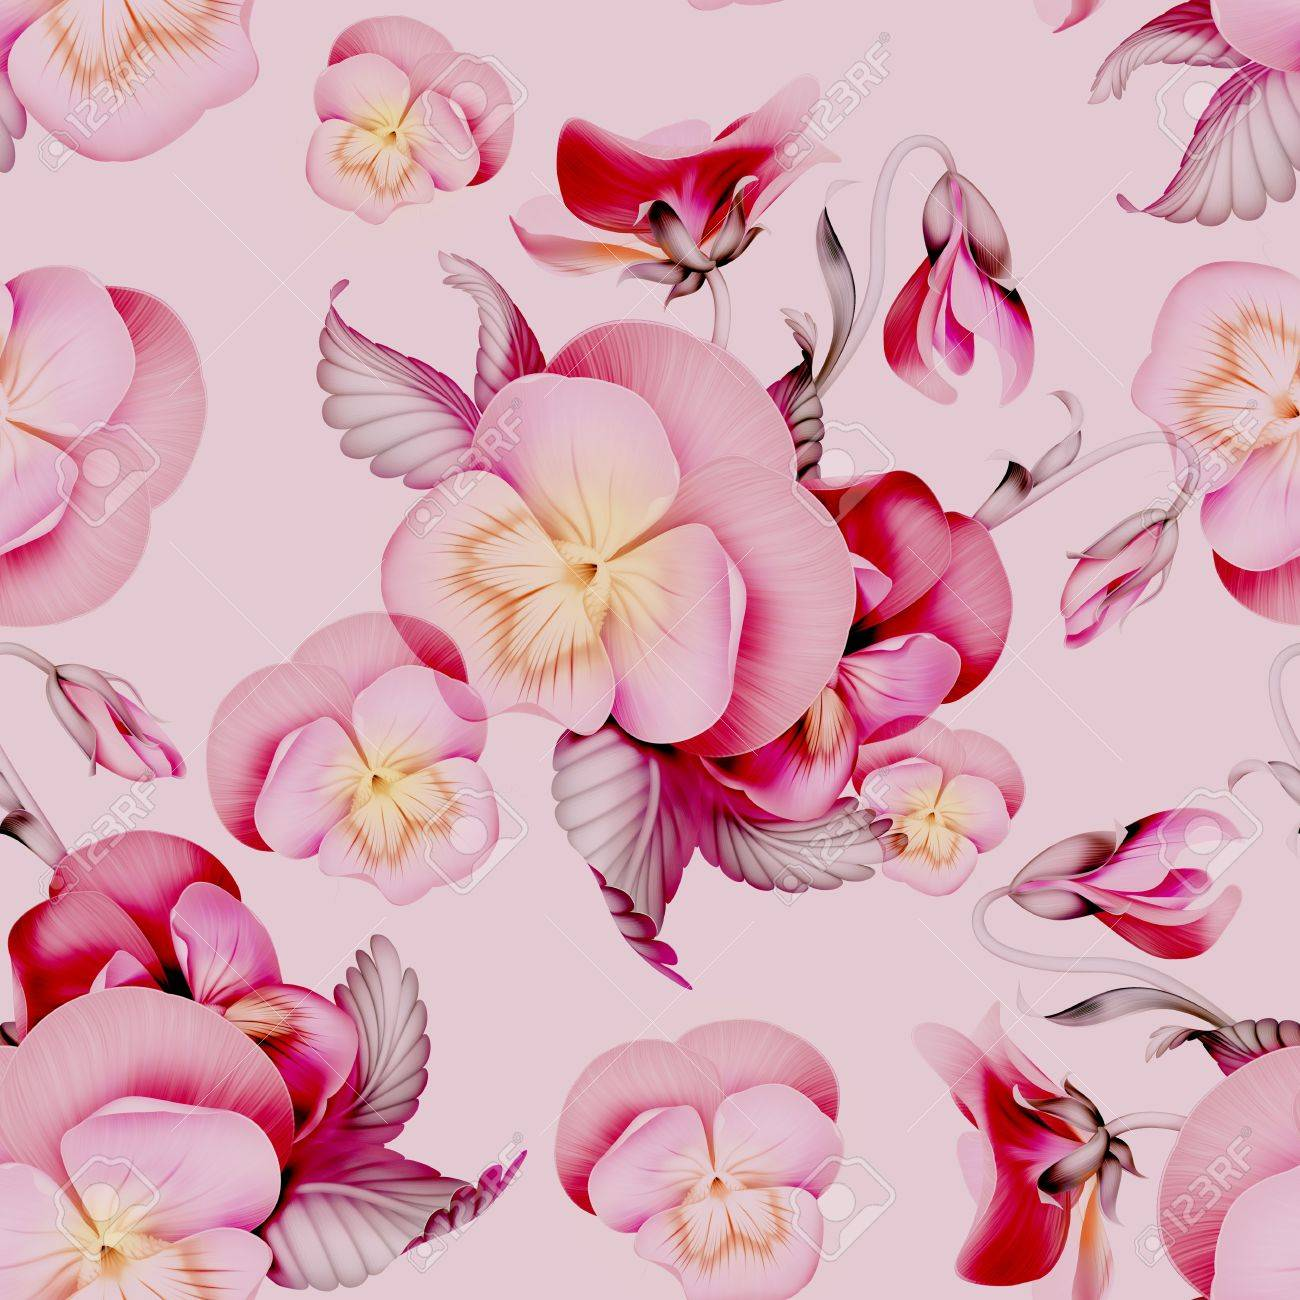 Pink pansy flowers seamless pattern background stock photo picture pink pansy flowers seamless pattern background stock photo 21492424 mightylinksfo